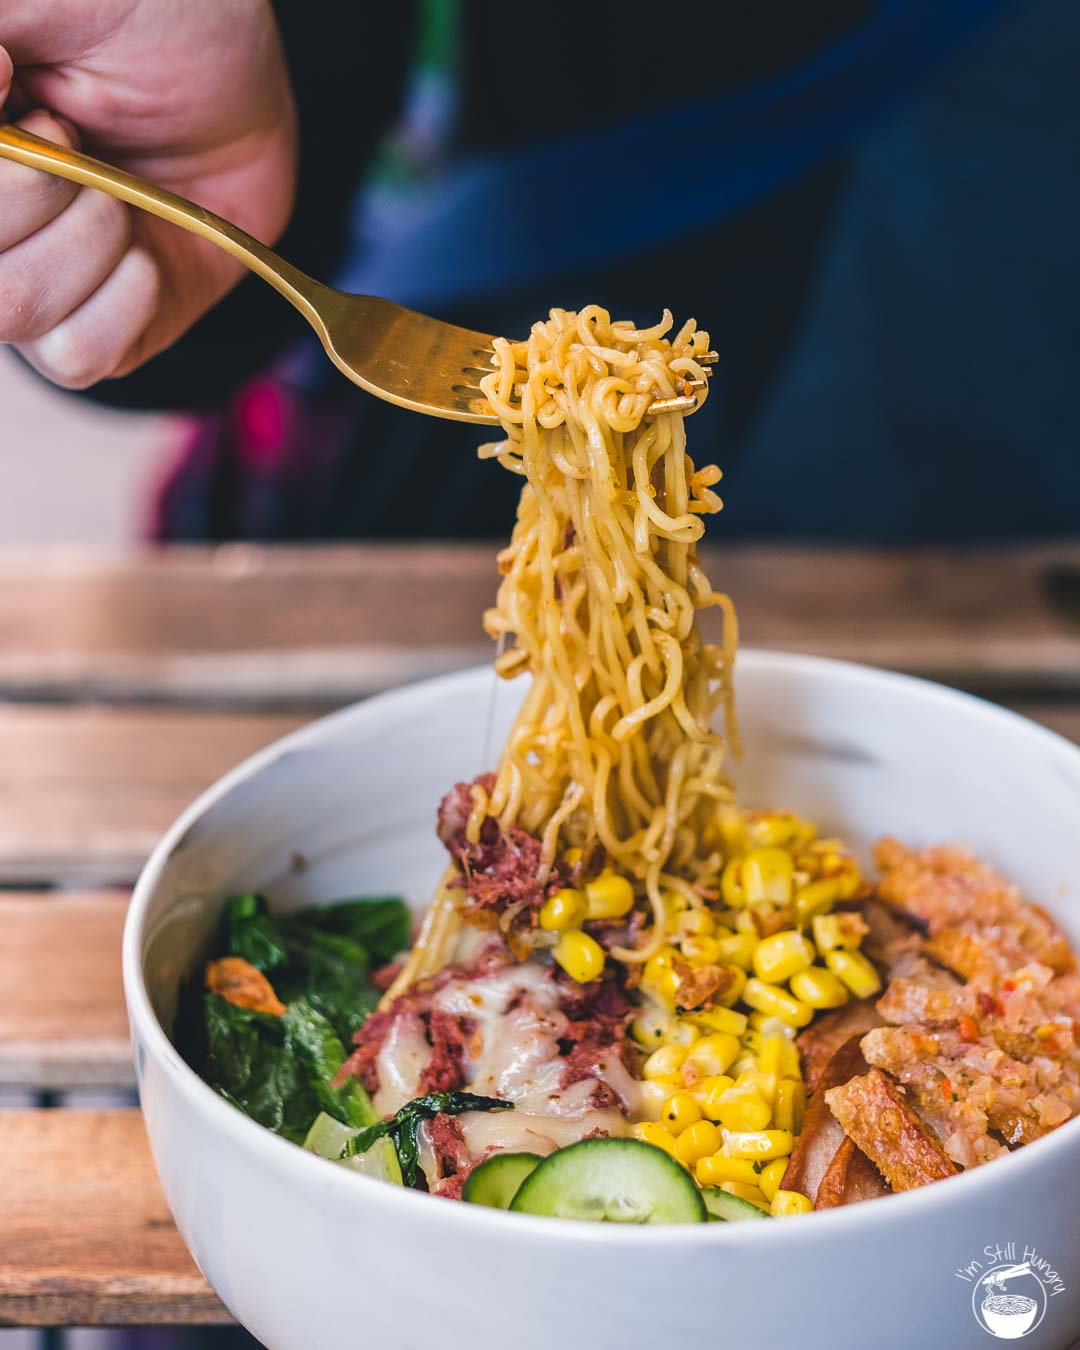 Kusuka Cafe Super bowl: double portion of mi goreng w/pork belly, salsa/chili matah, corned beef & melted cheese, sausages & extra toppings (indomie super galau)